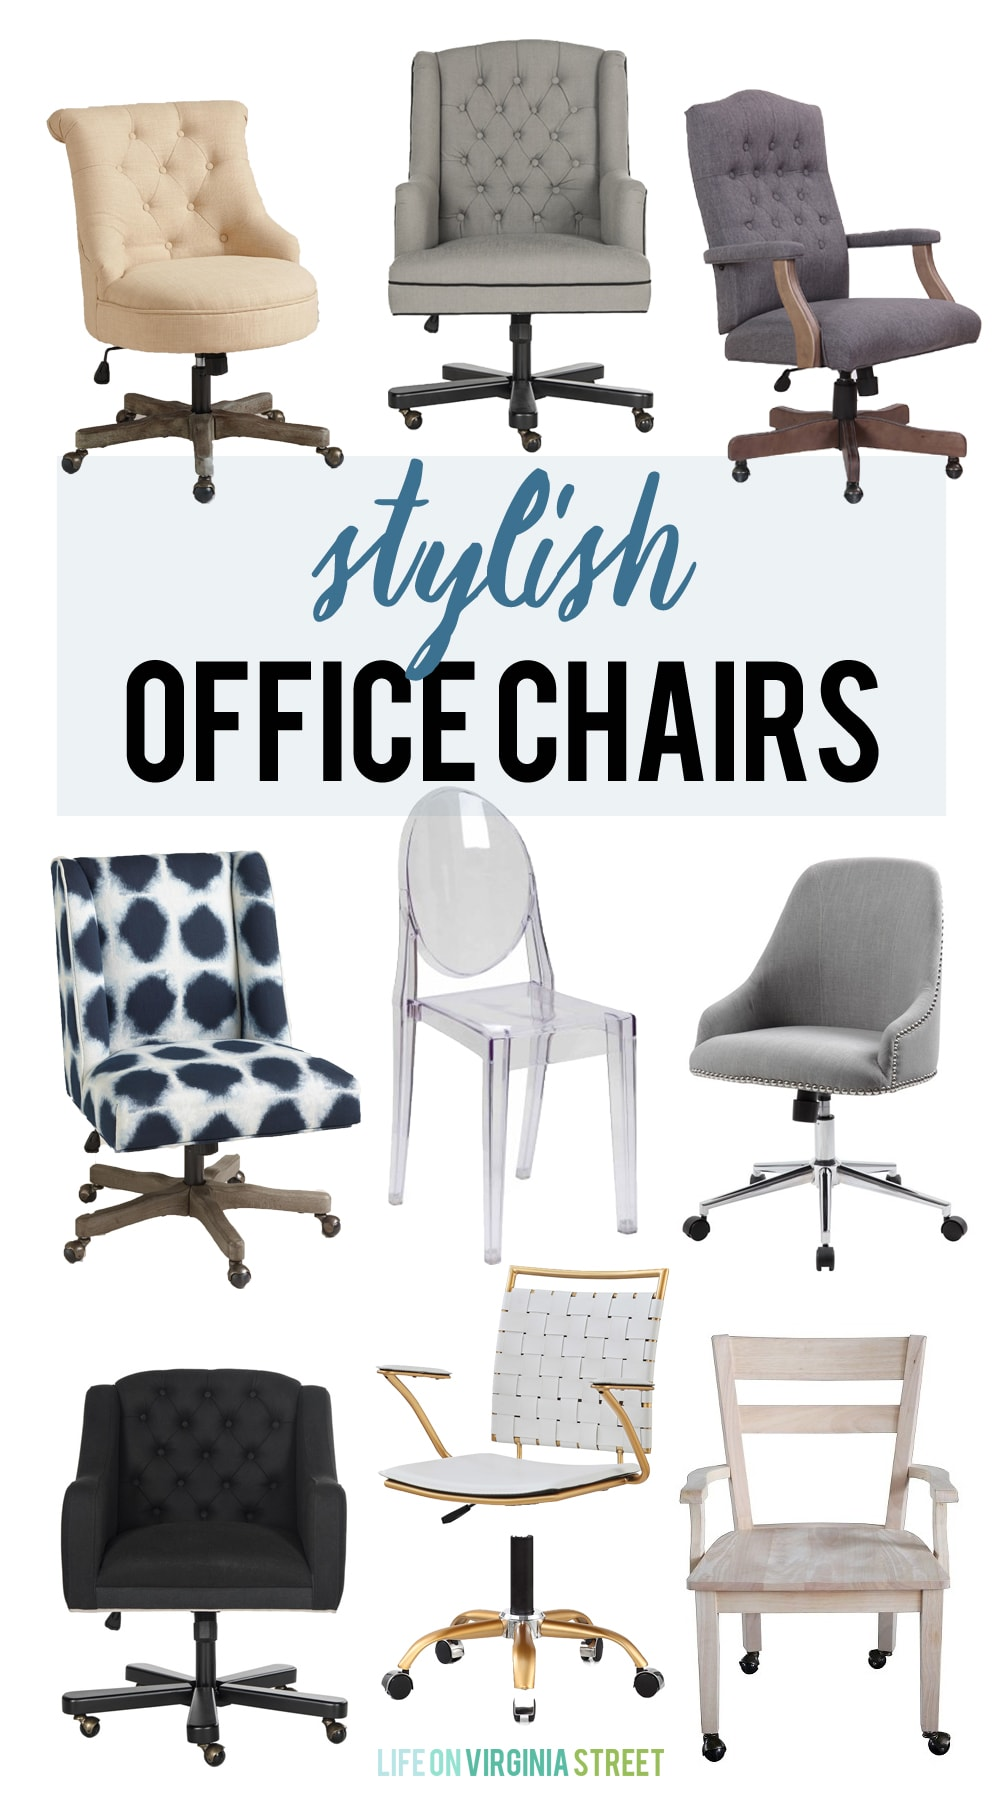 Stylish-Office-Chairs-that-work-well-for